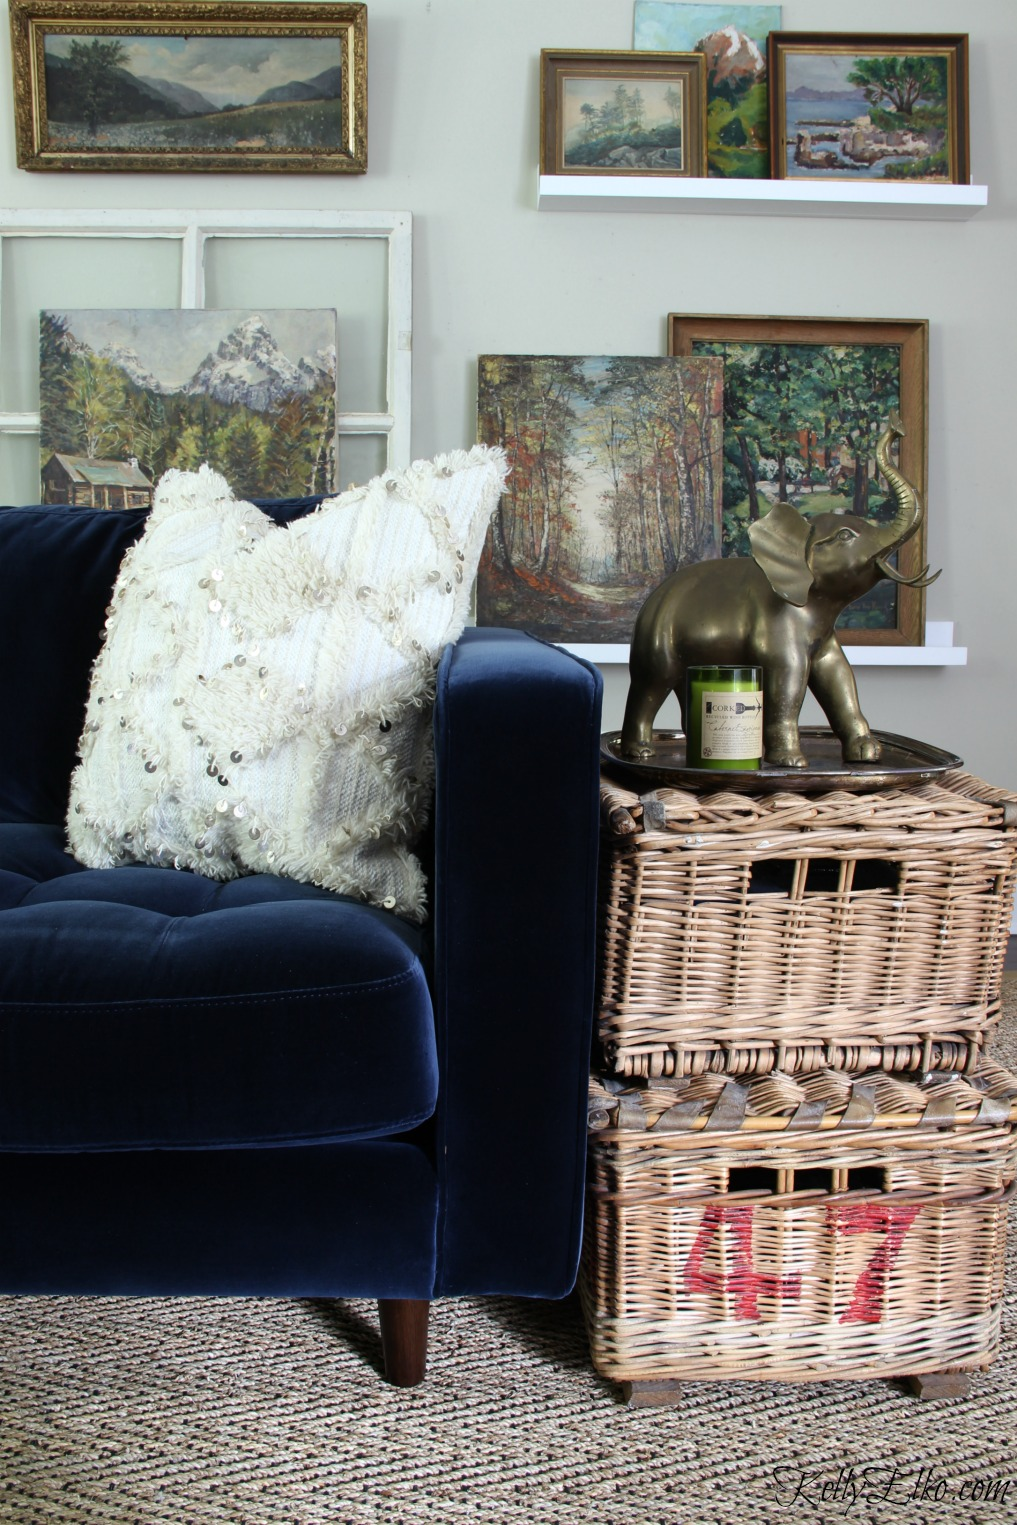 Eclectic Mix - mid century modern style blue velvet sofa, seagrass rug, vintage landscape paintings and antique wicker baskets kellyelko.com